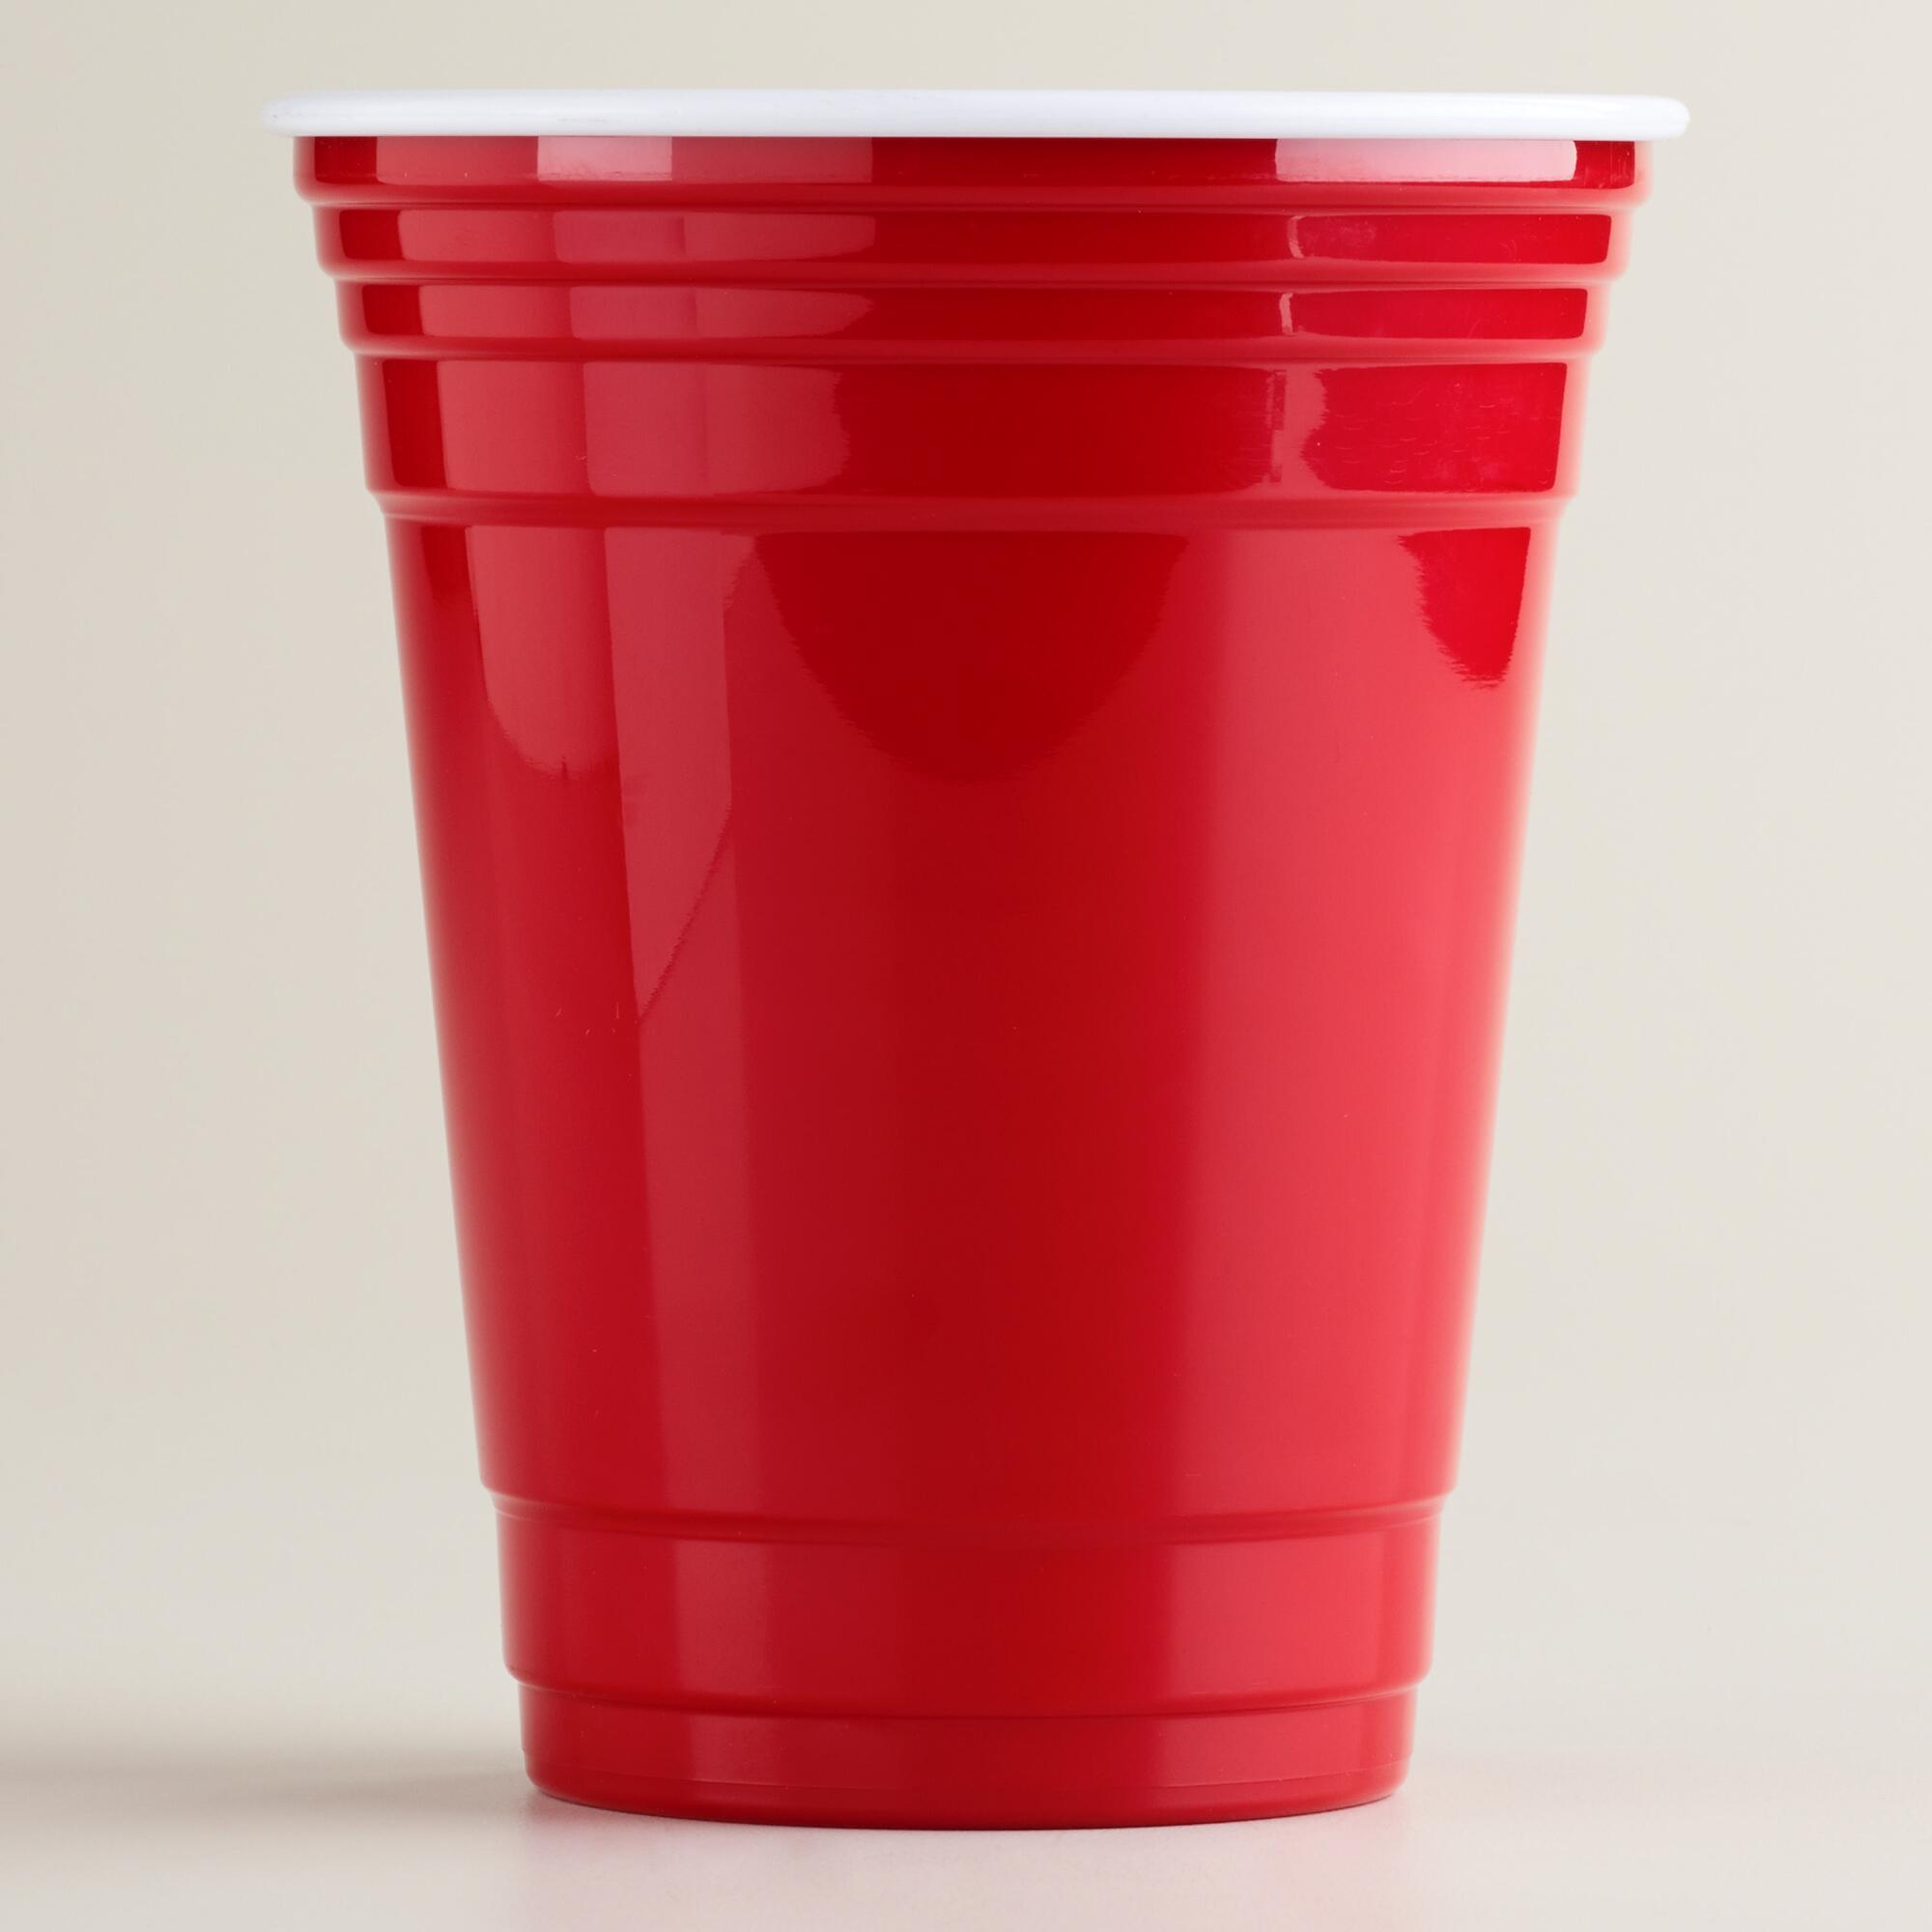 Where would we be without Flip Cup and Beer Pong, as a society?